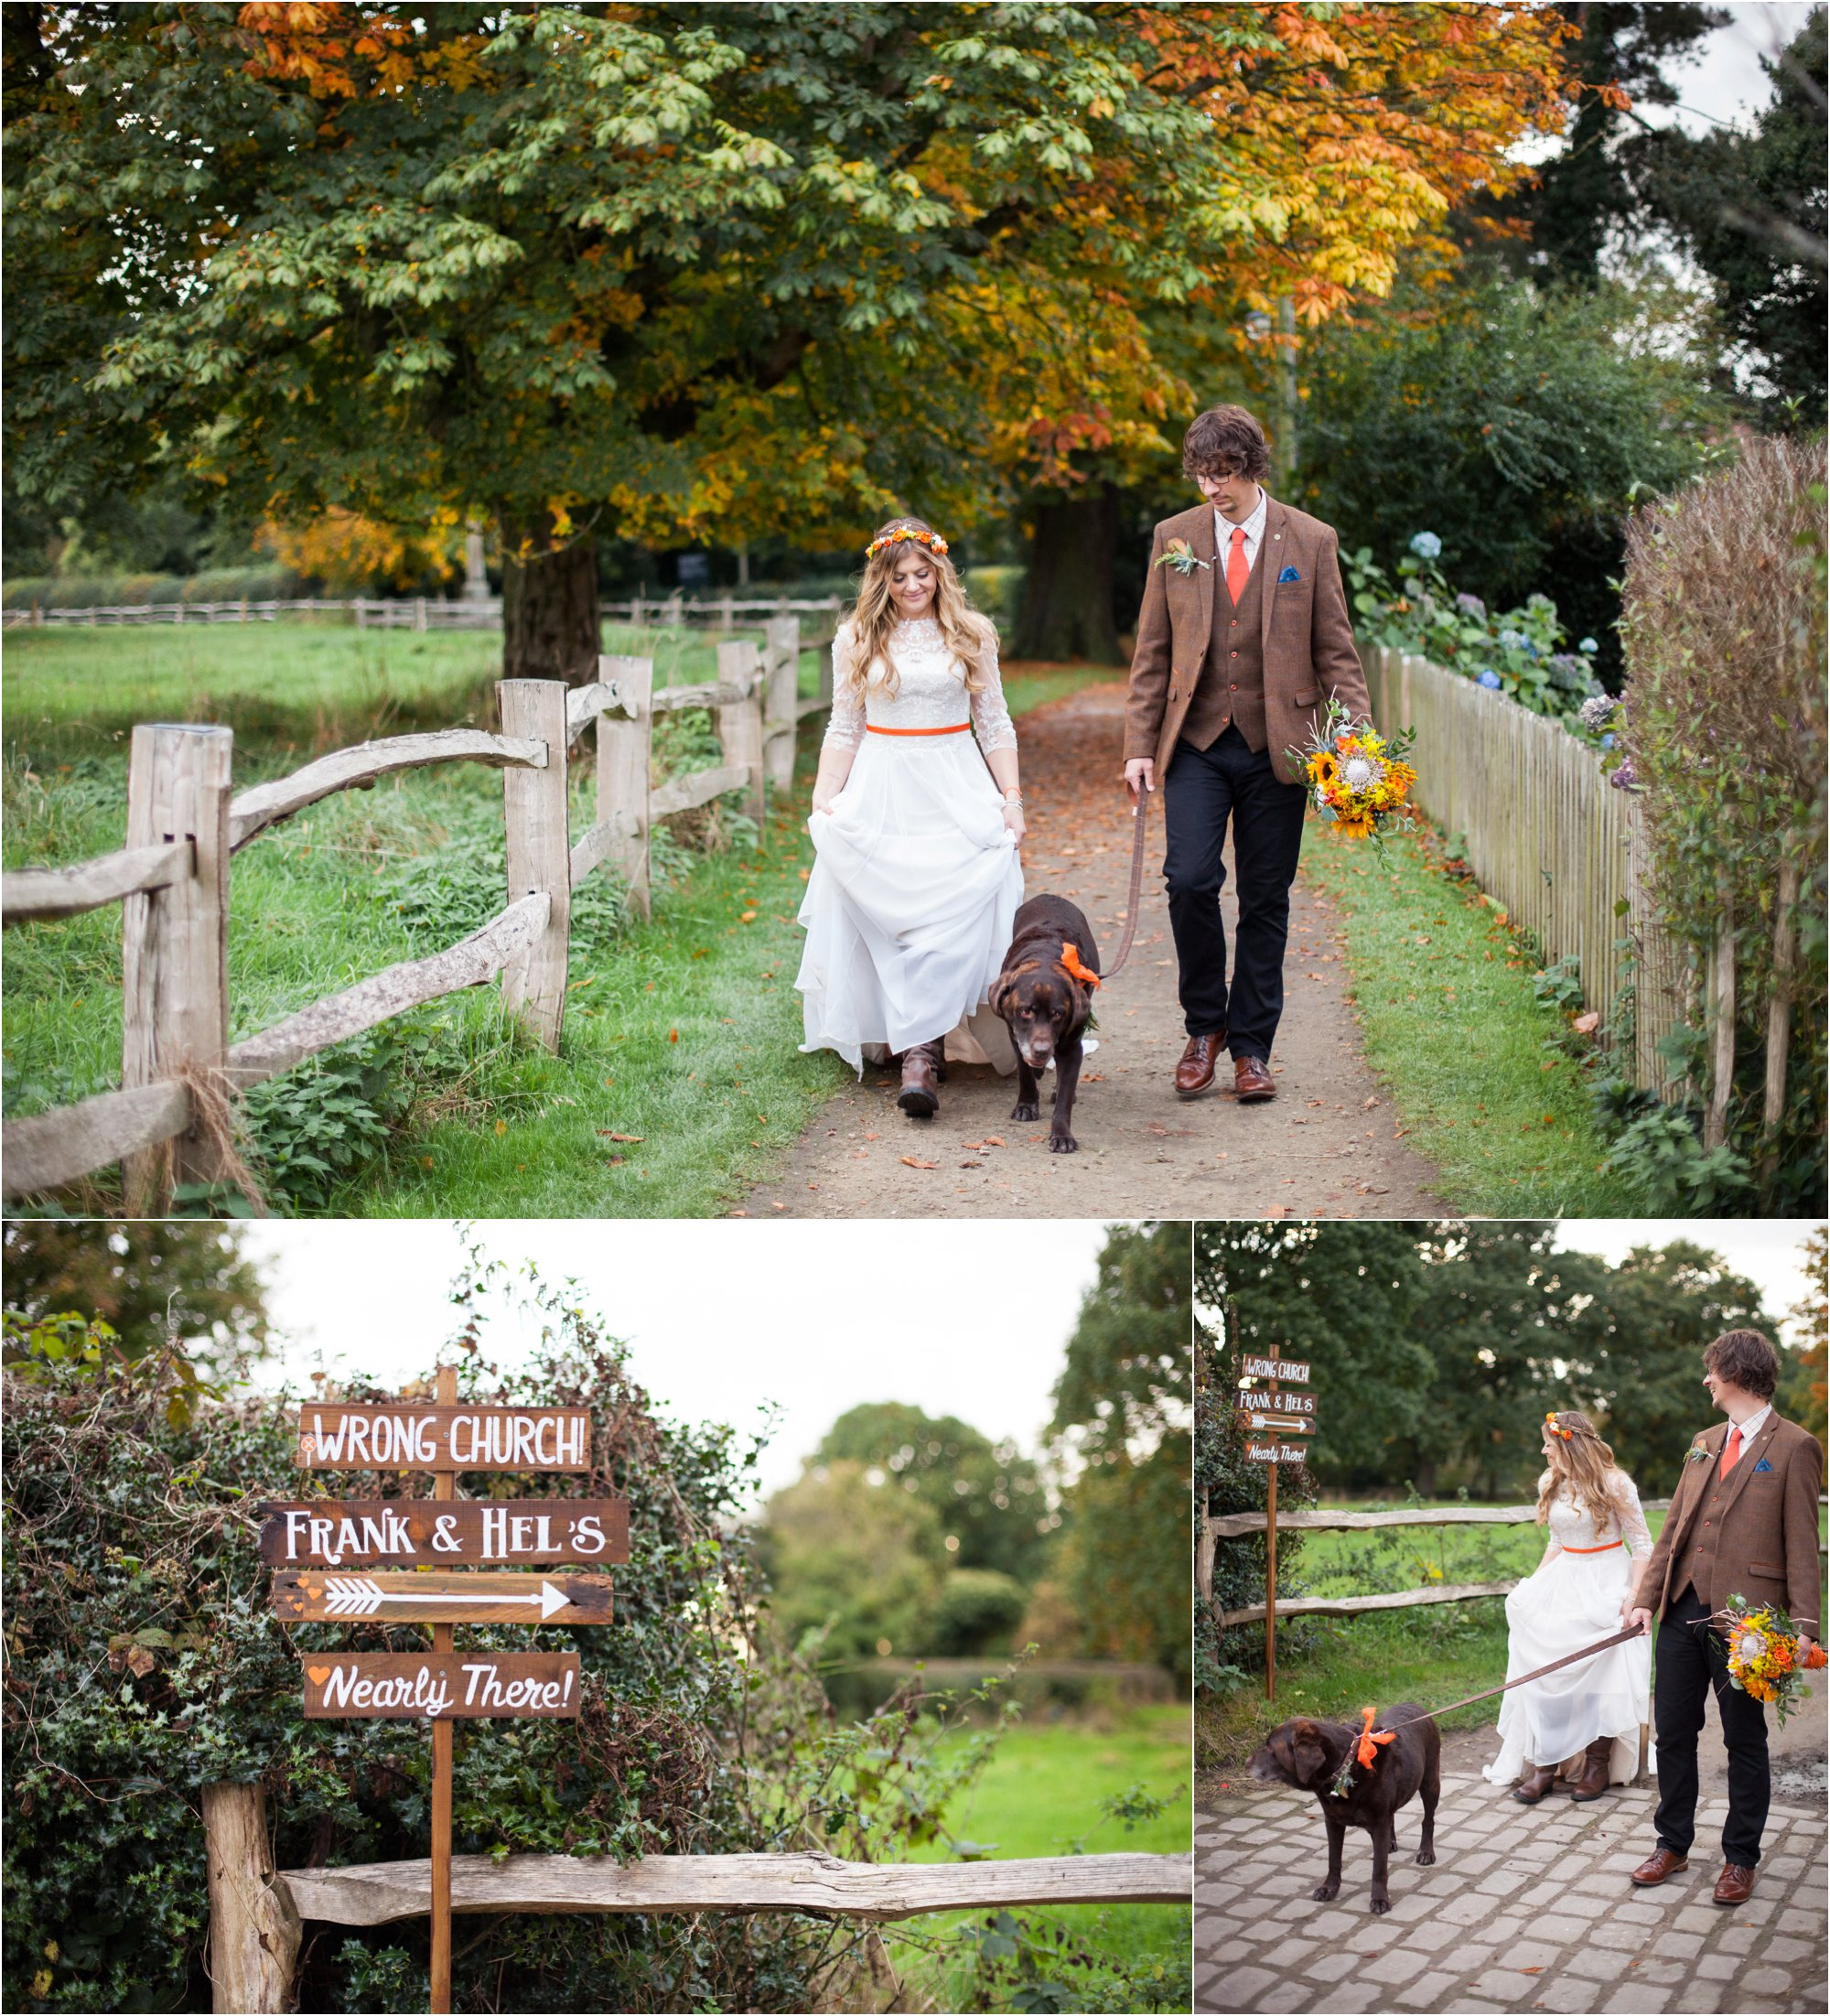 Styal_Wedding_Wilmslow_Cheshire_Autumn_Colourful_photography_0123.jpg